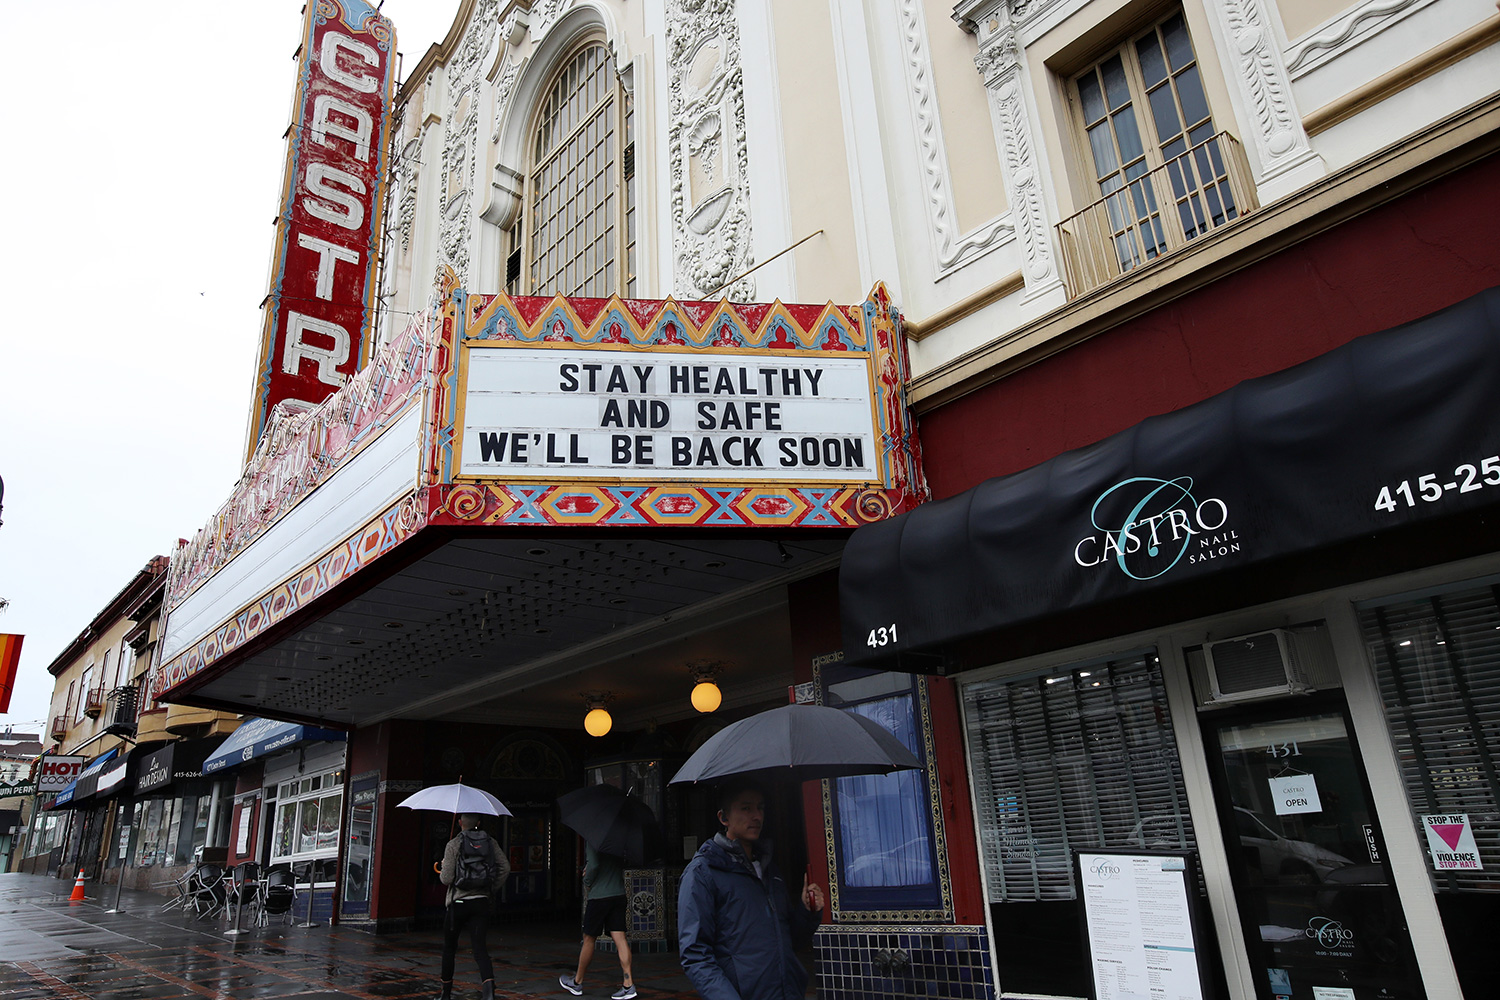 Castro Theatre that has a marquee announcing that they are closed due to a statewide ordinance banning gatherings of more than 250 people on March 15, 2020 in San Francisco, California